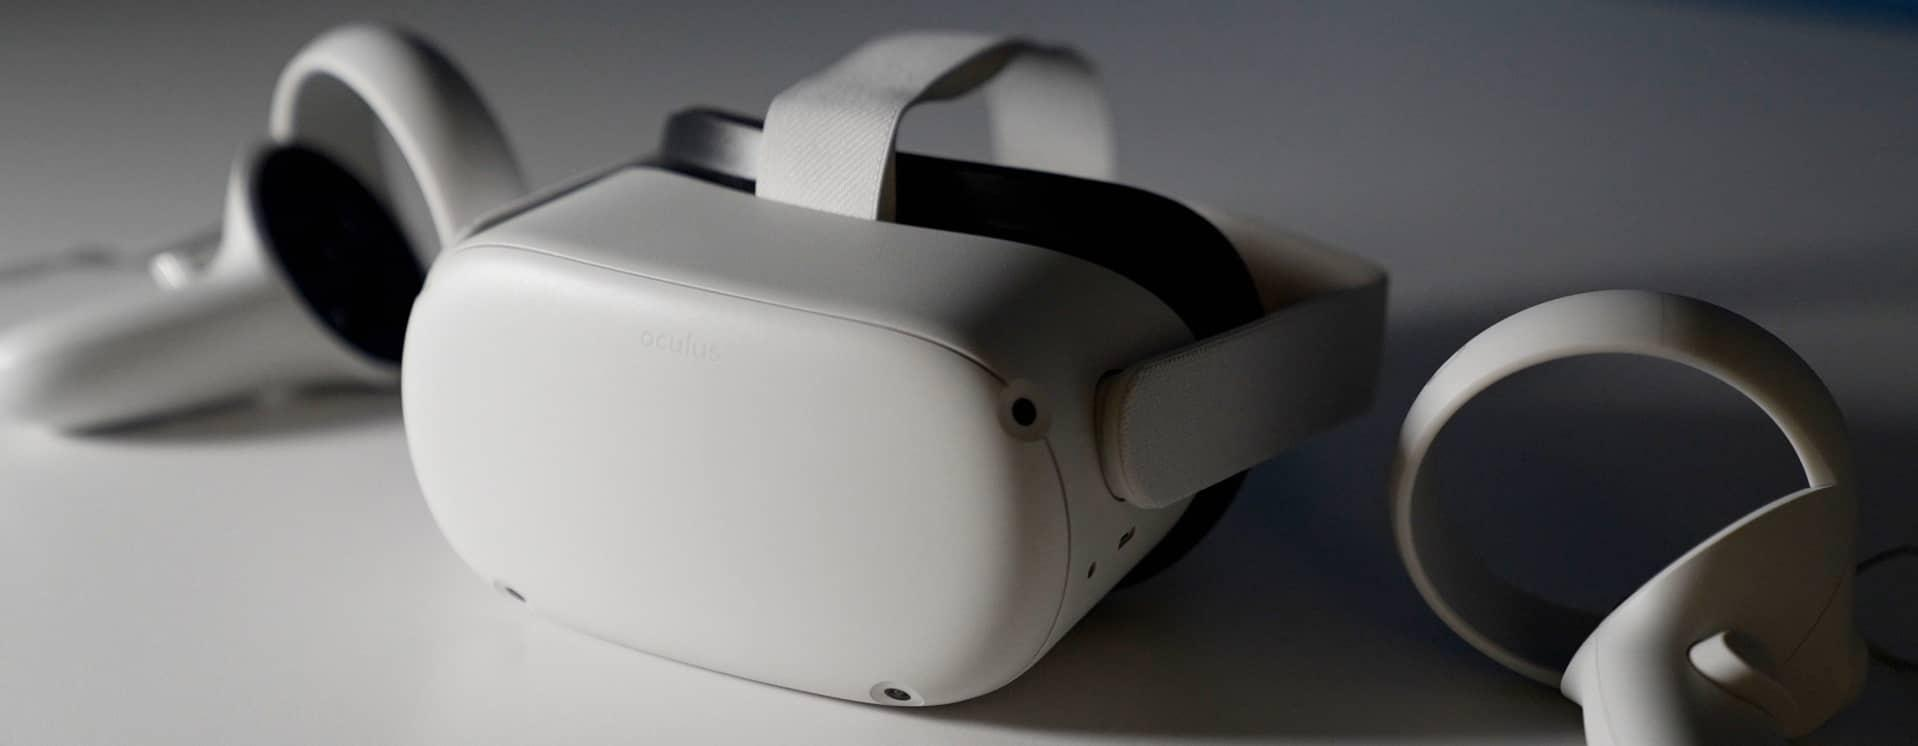 White Oculus brand VR head set on white table top with hand controllers and dramatic lighting.